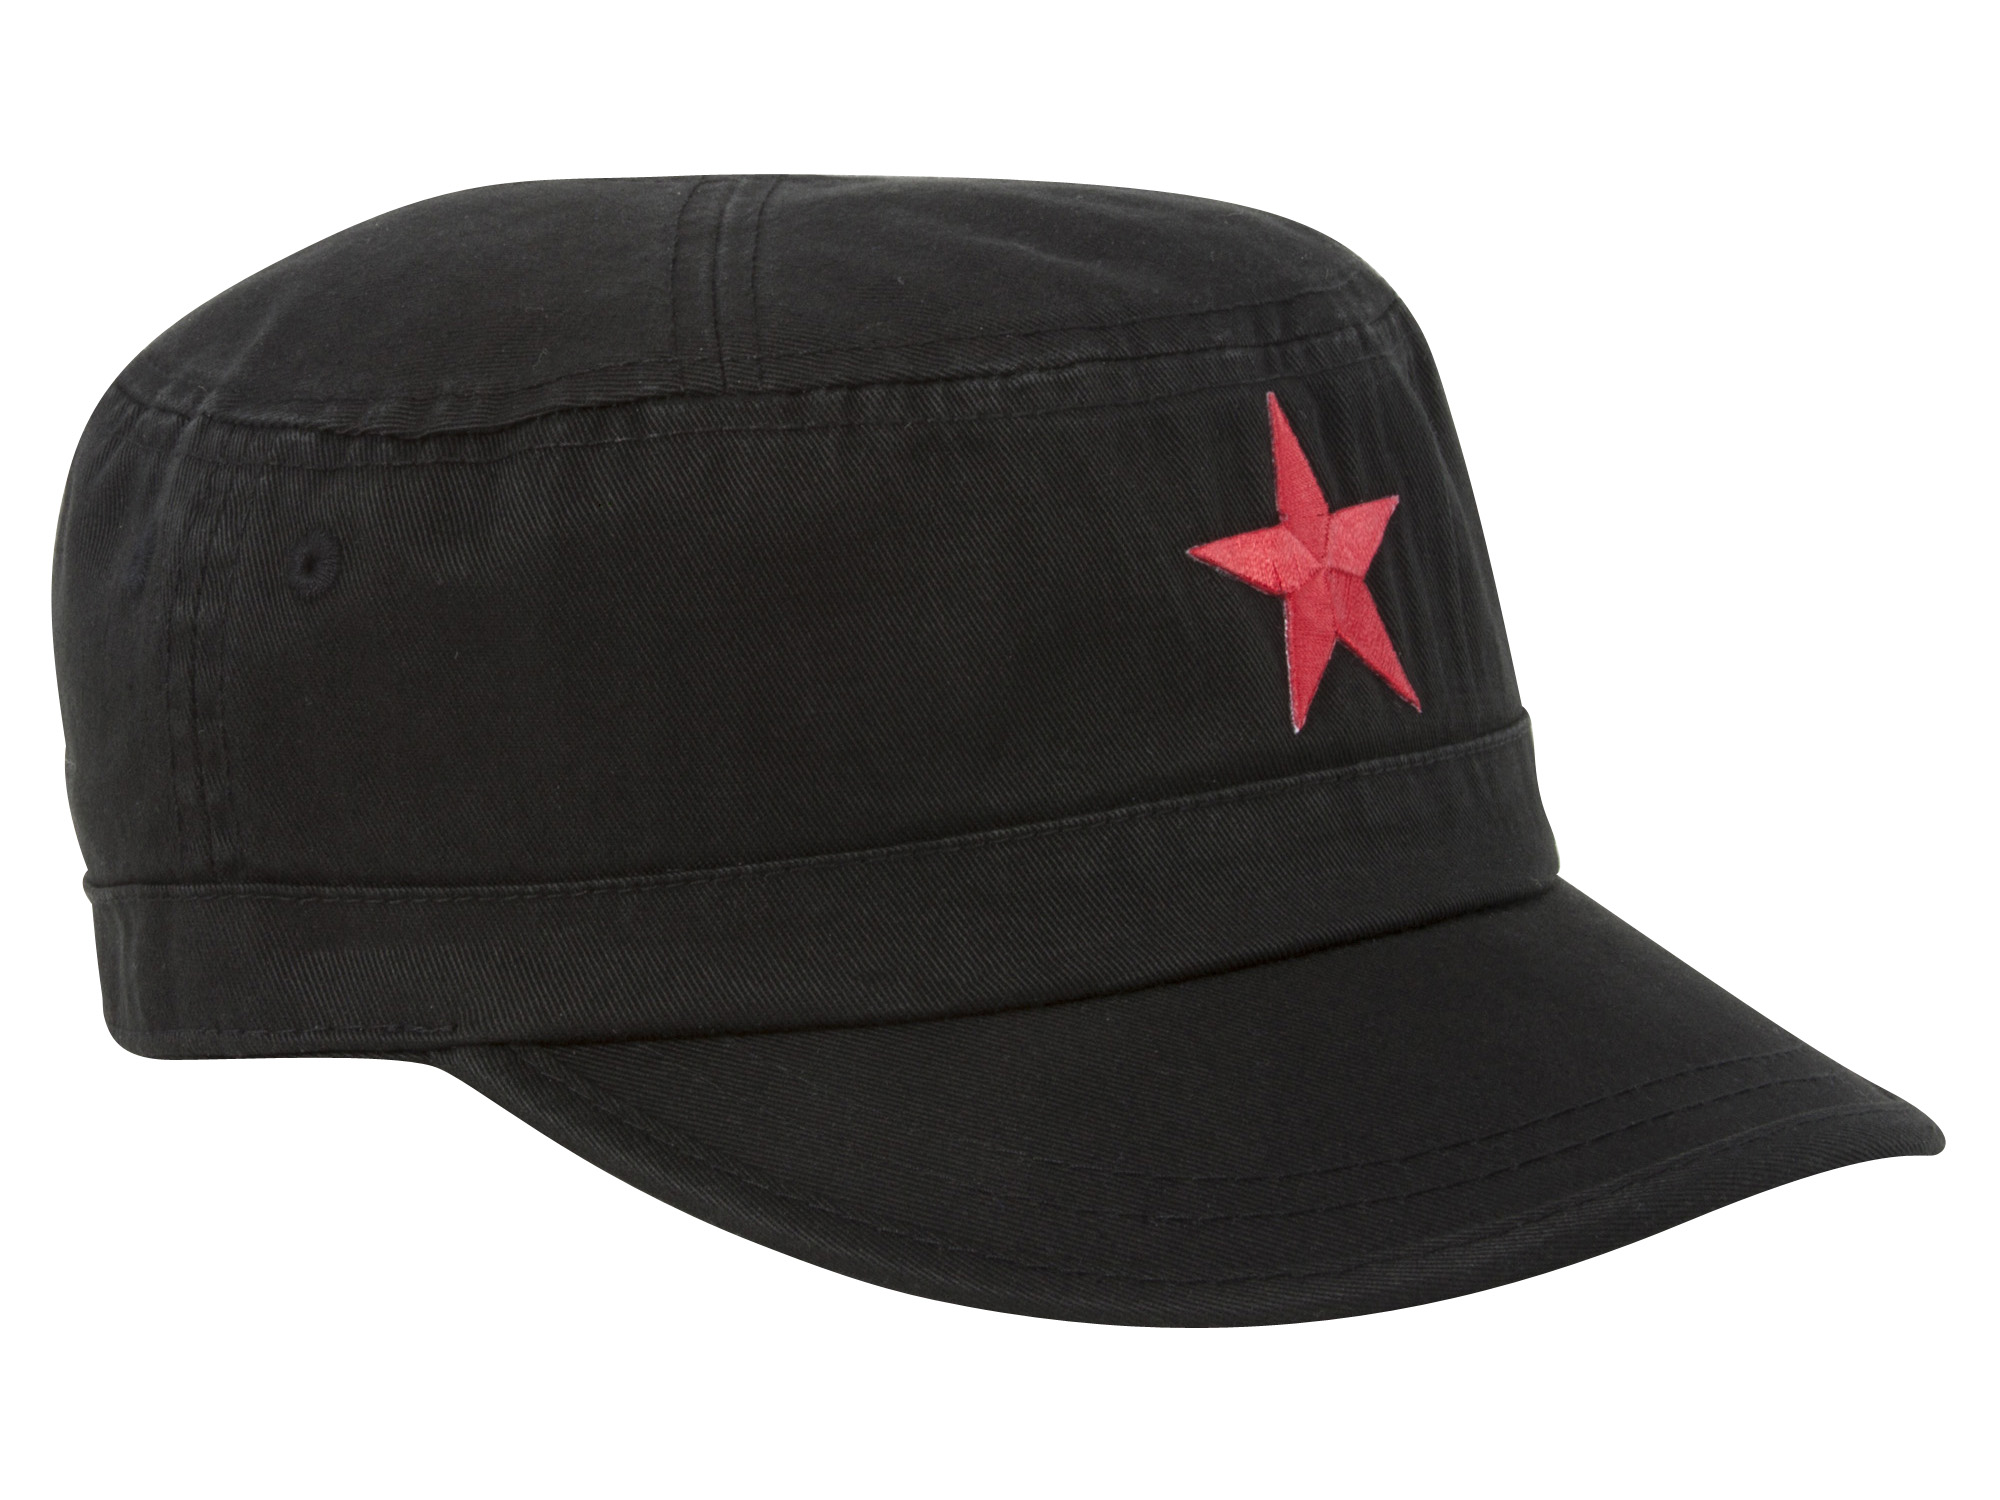 New-Army-Cadet-Adjustable-Hat-w-Red-Star thumbnail 4